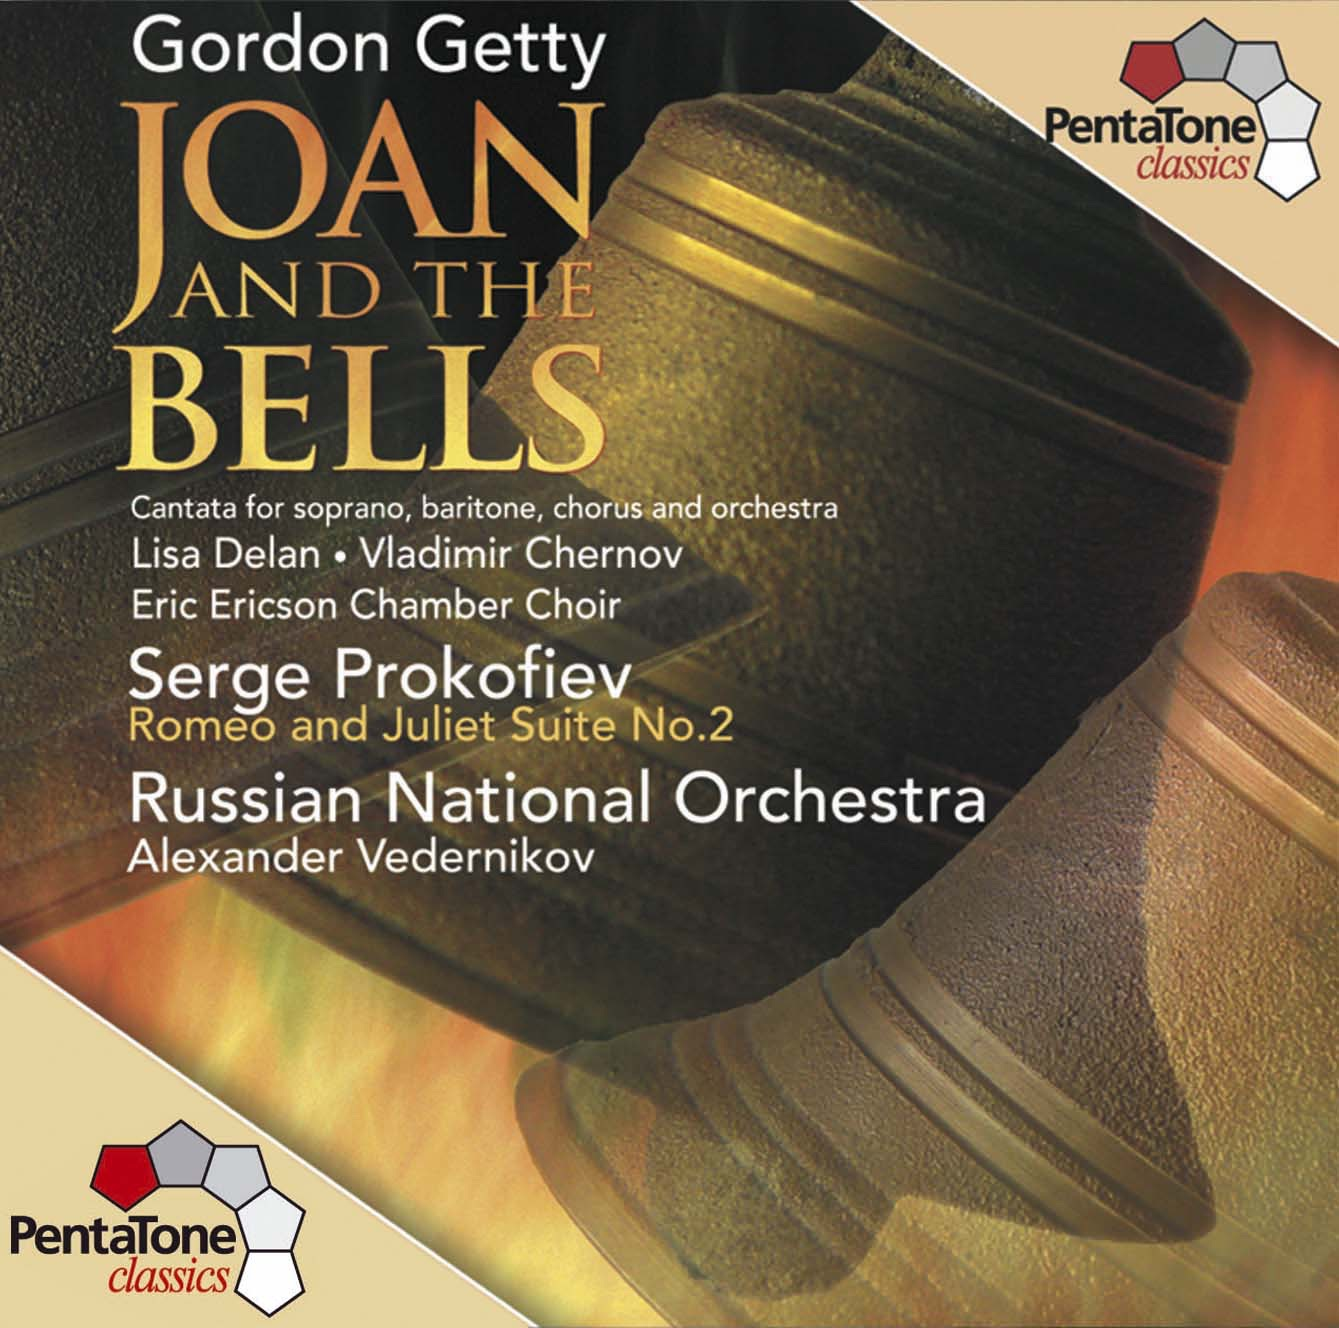 Getty: Joan and the Bells - Prokofiev: Romeo and Juliet